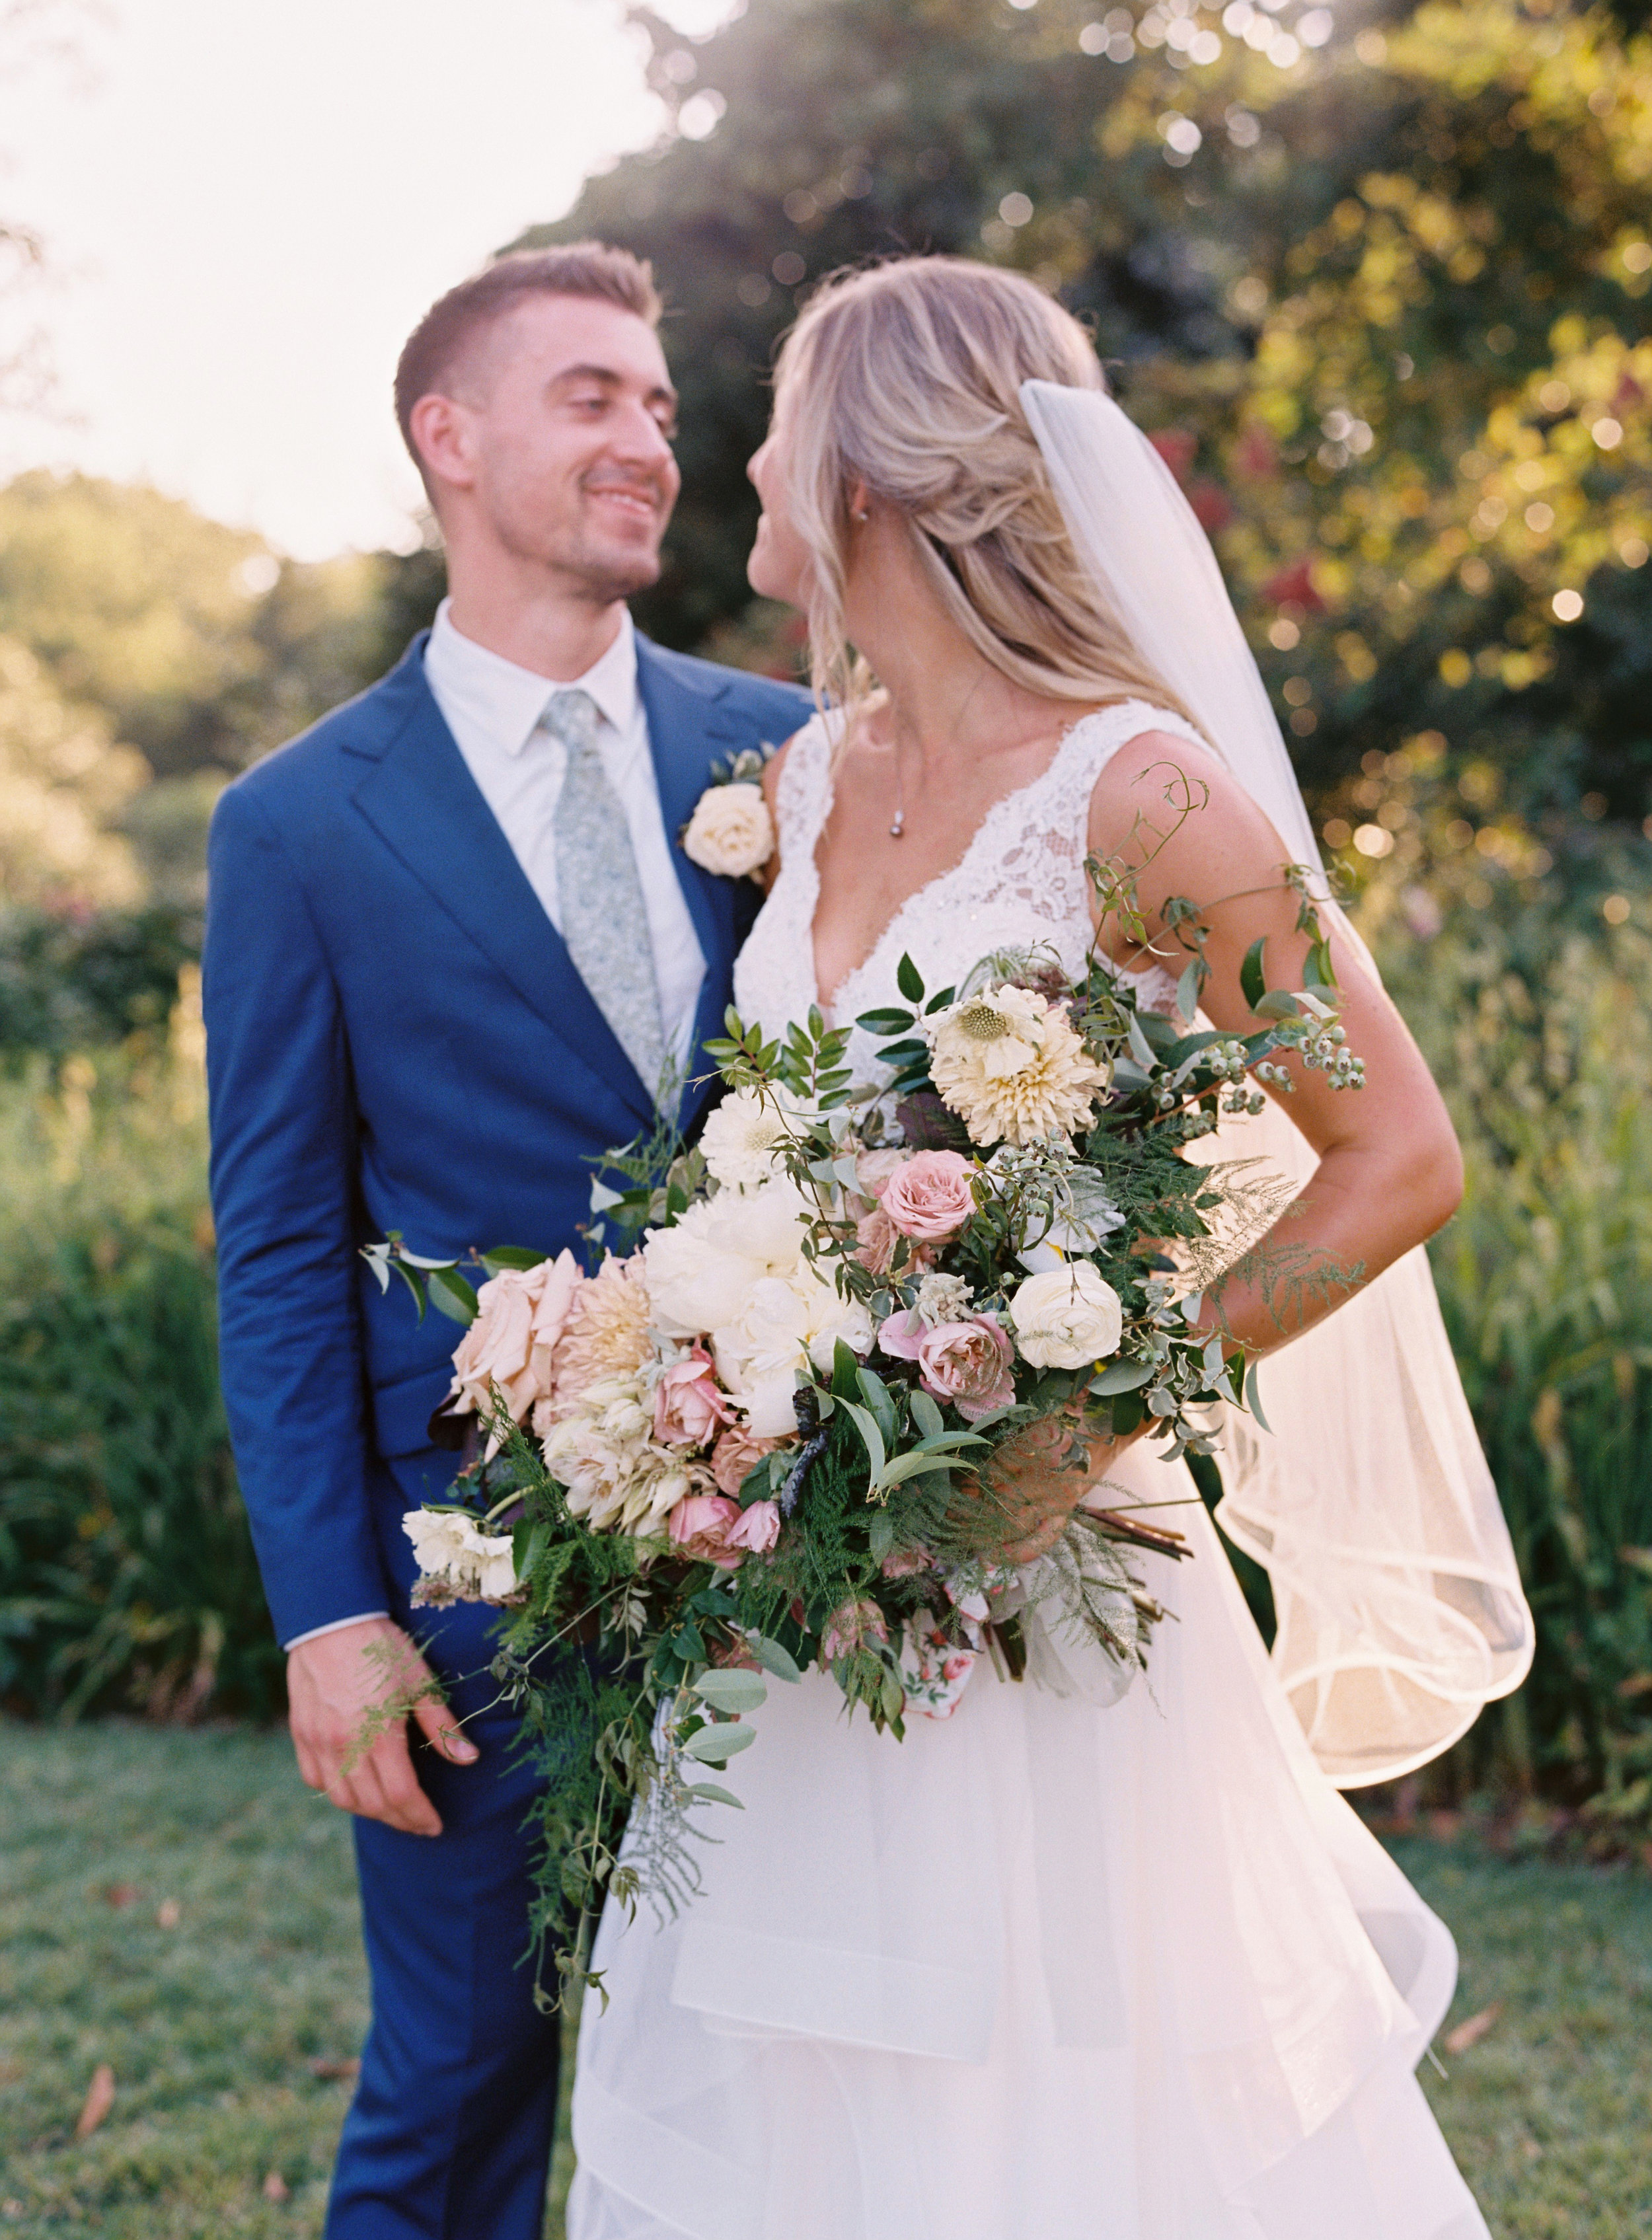 Garden inspired bridal bouquet with cafe au lait dahlias, garden roses, peonies, ranunculus, and trailing greenery // Nashville Wedding Floral Design